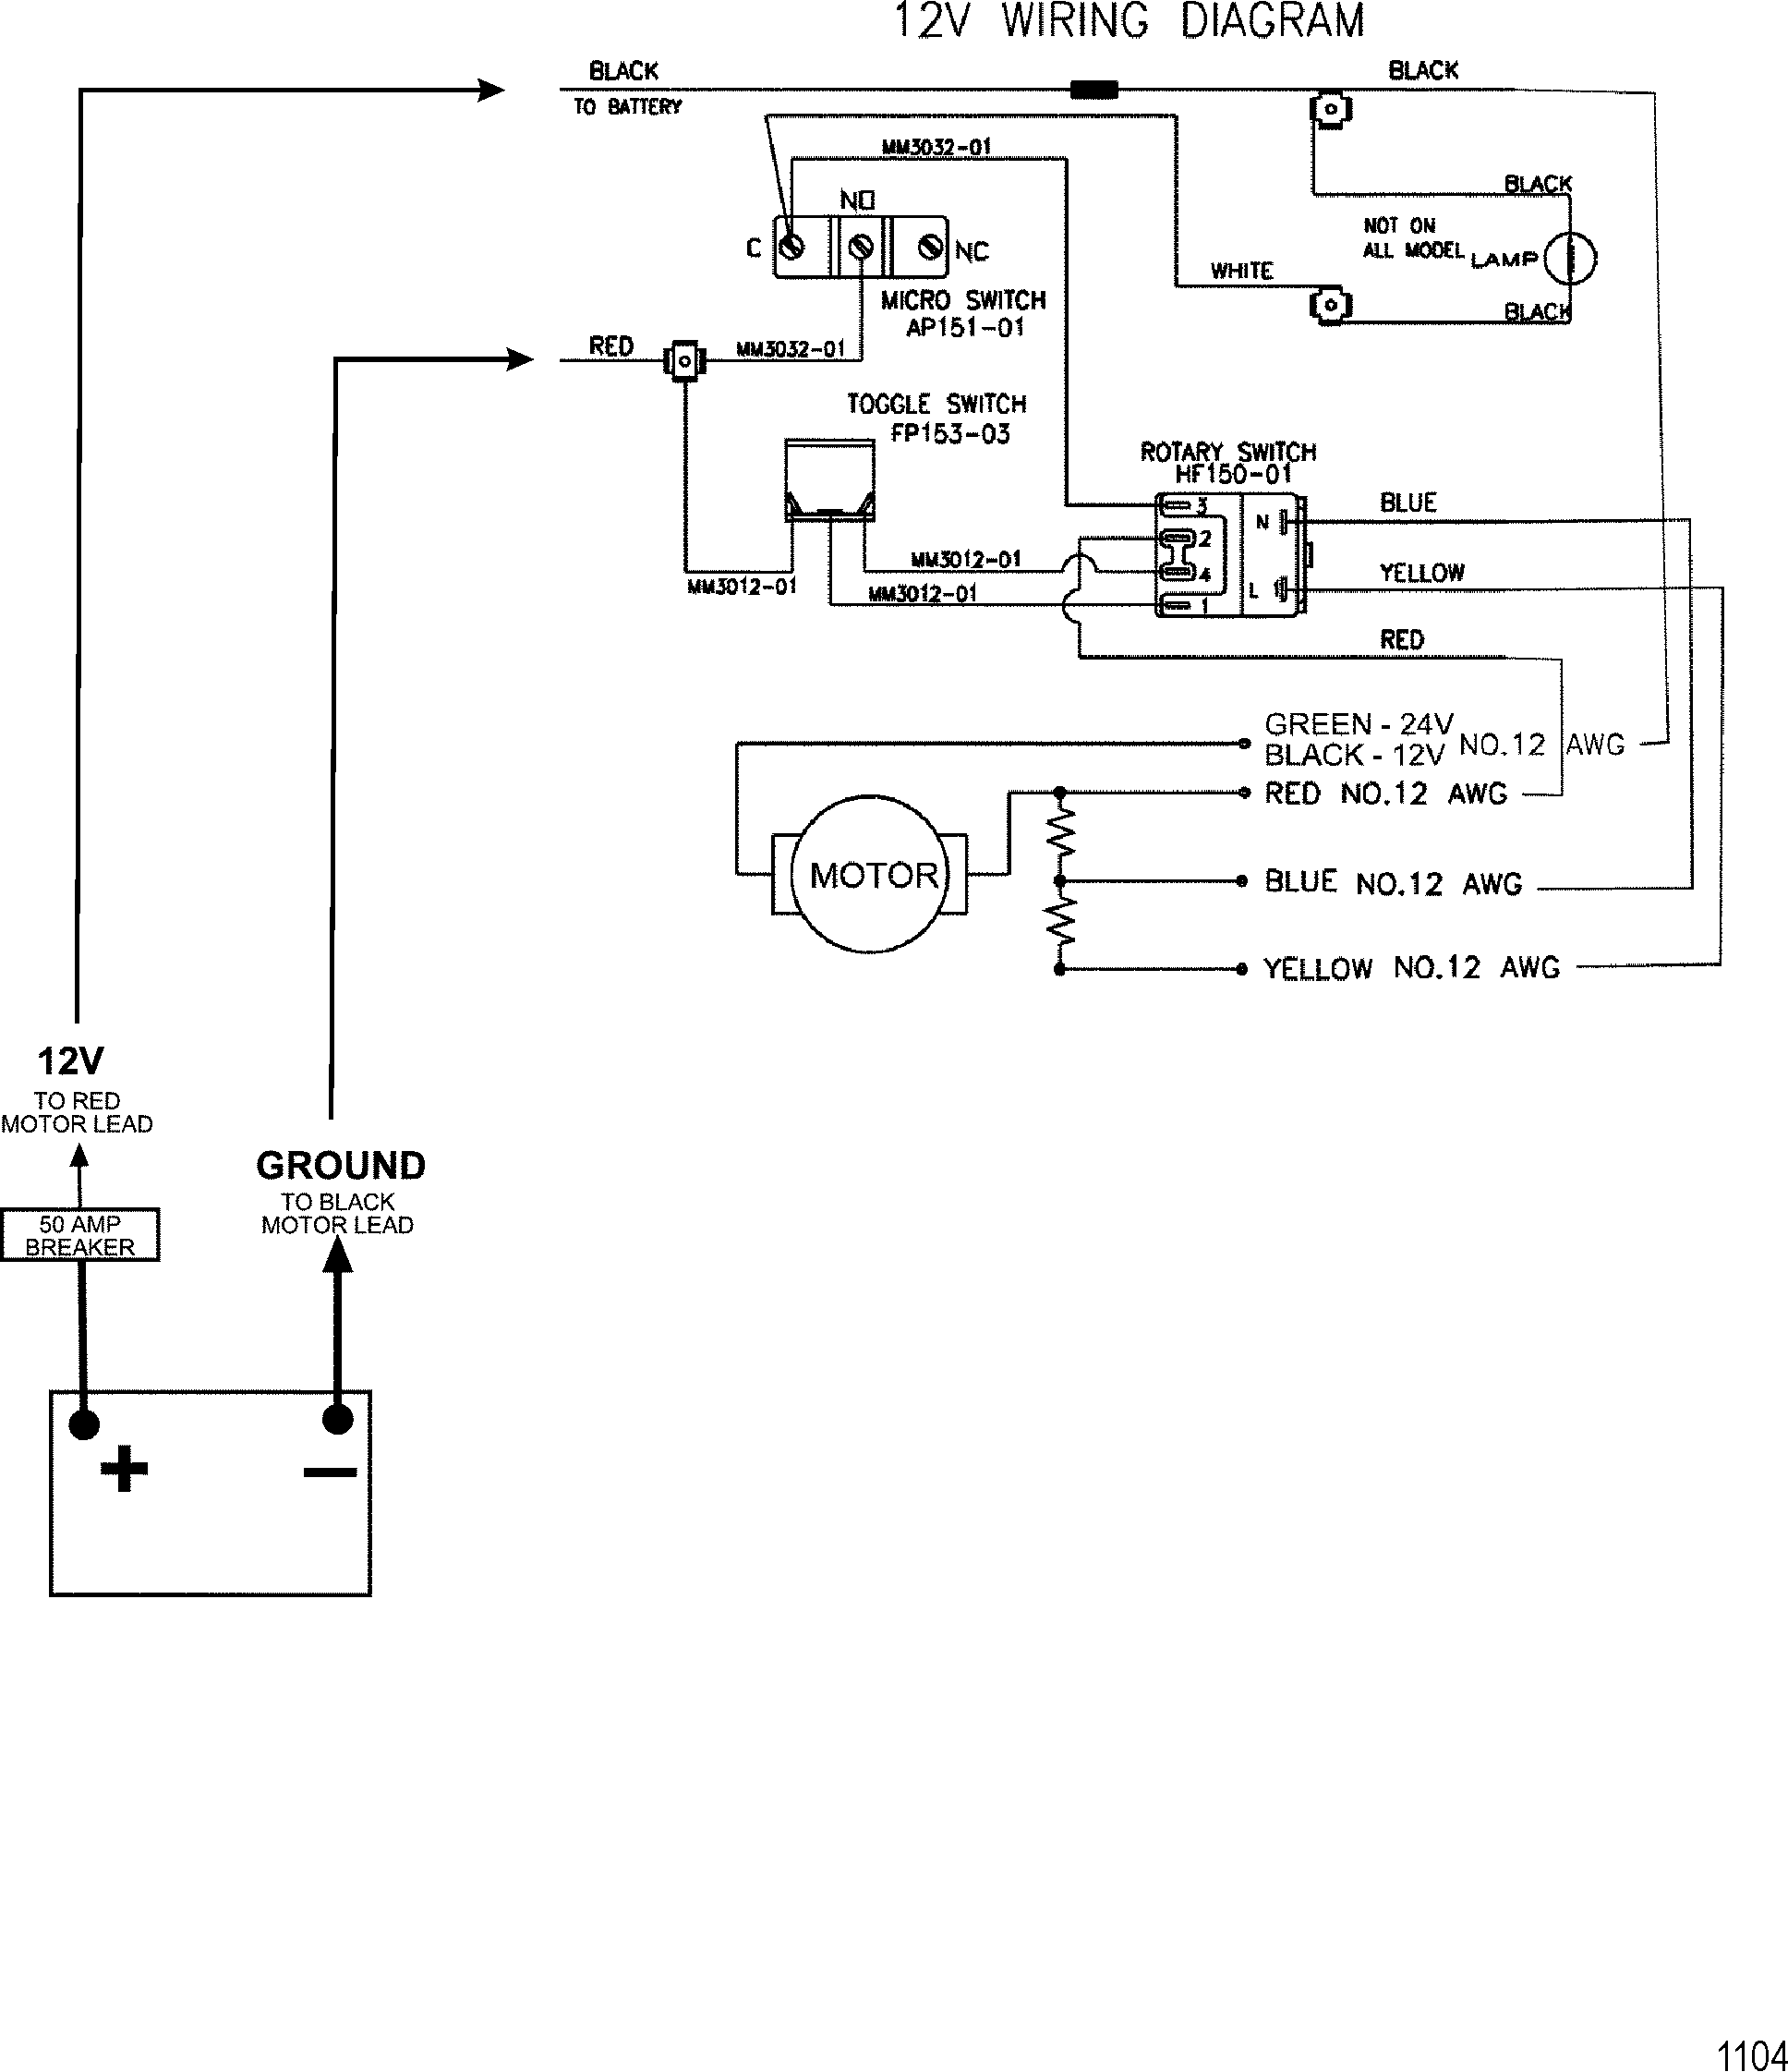 Motorguide Wireless Wiring Diagram